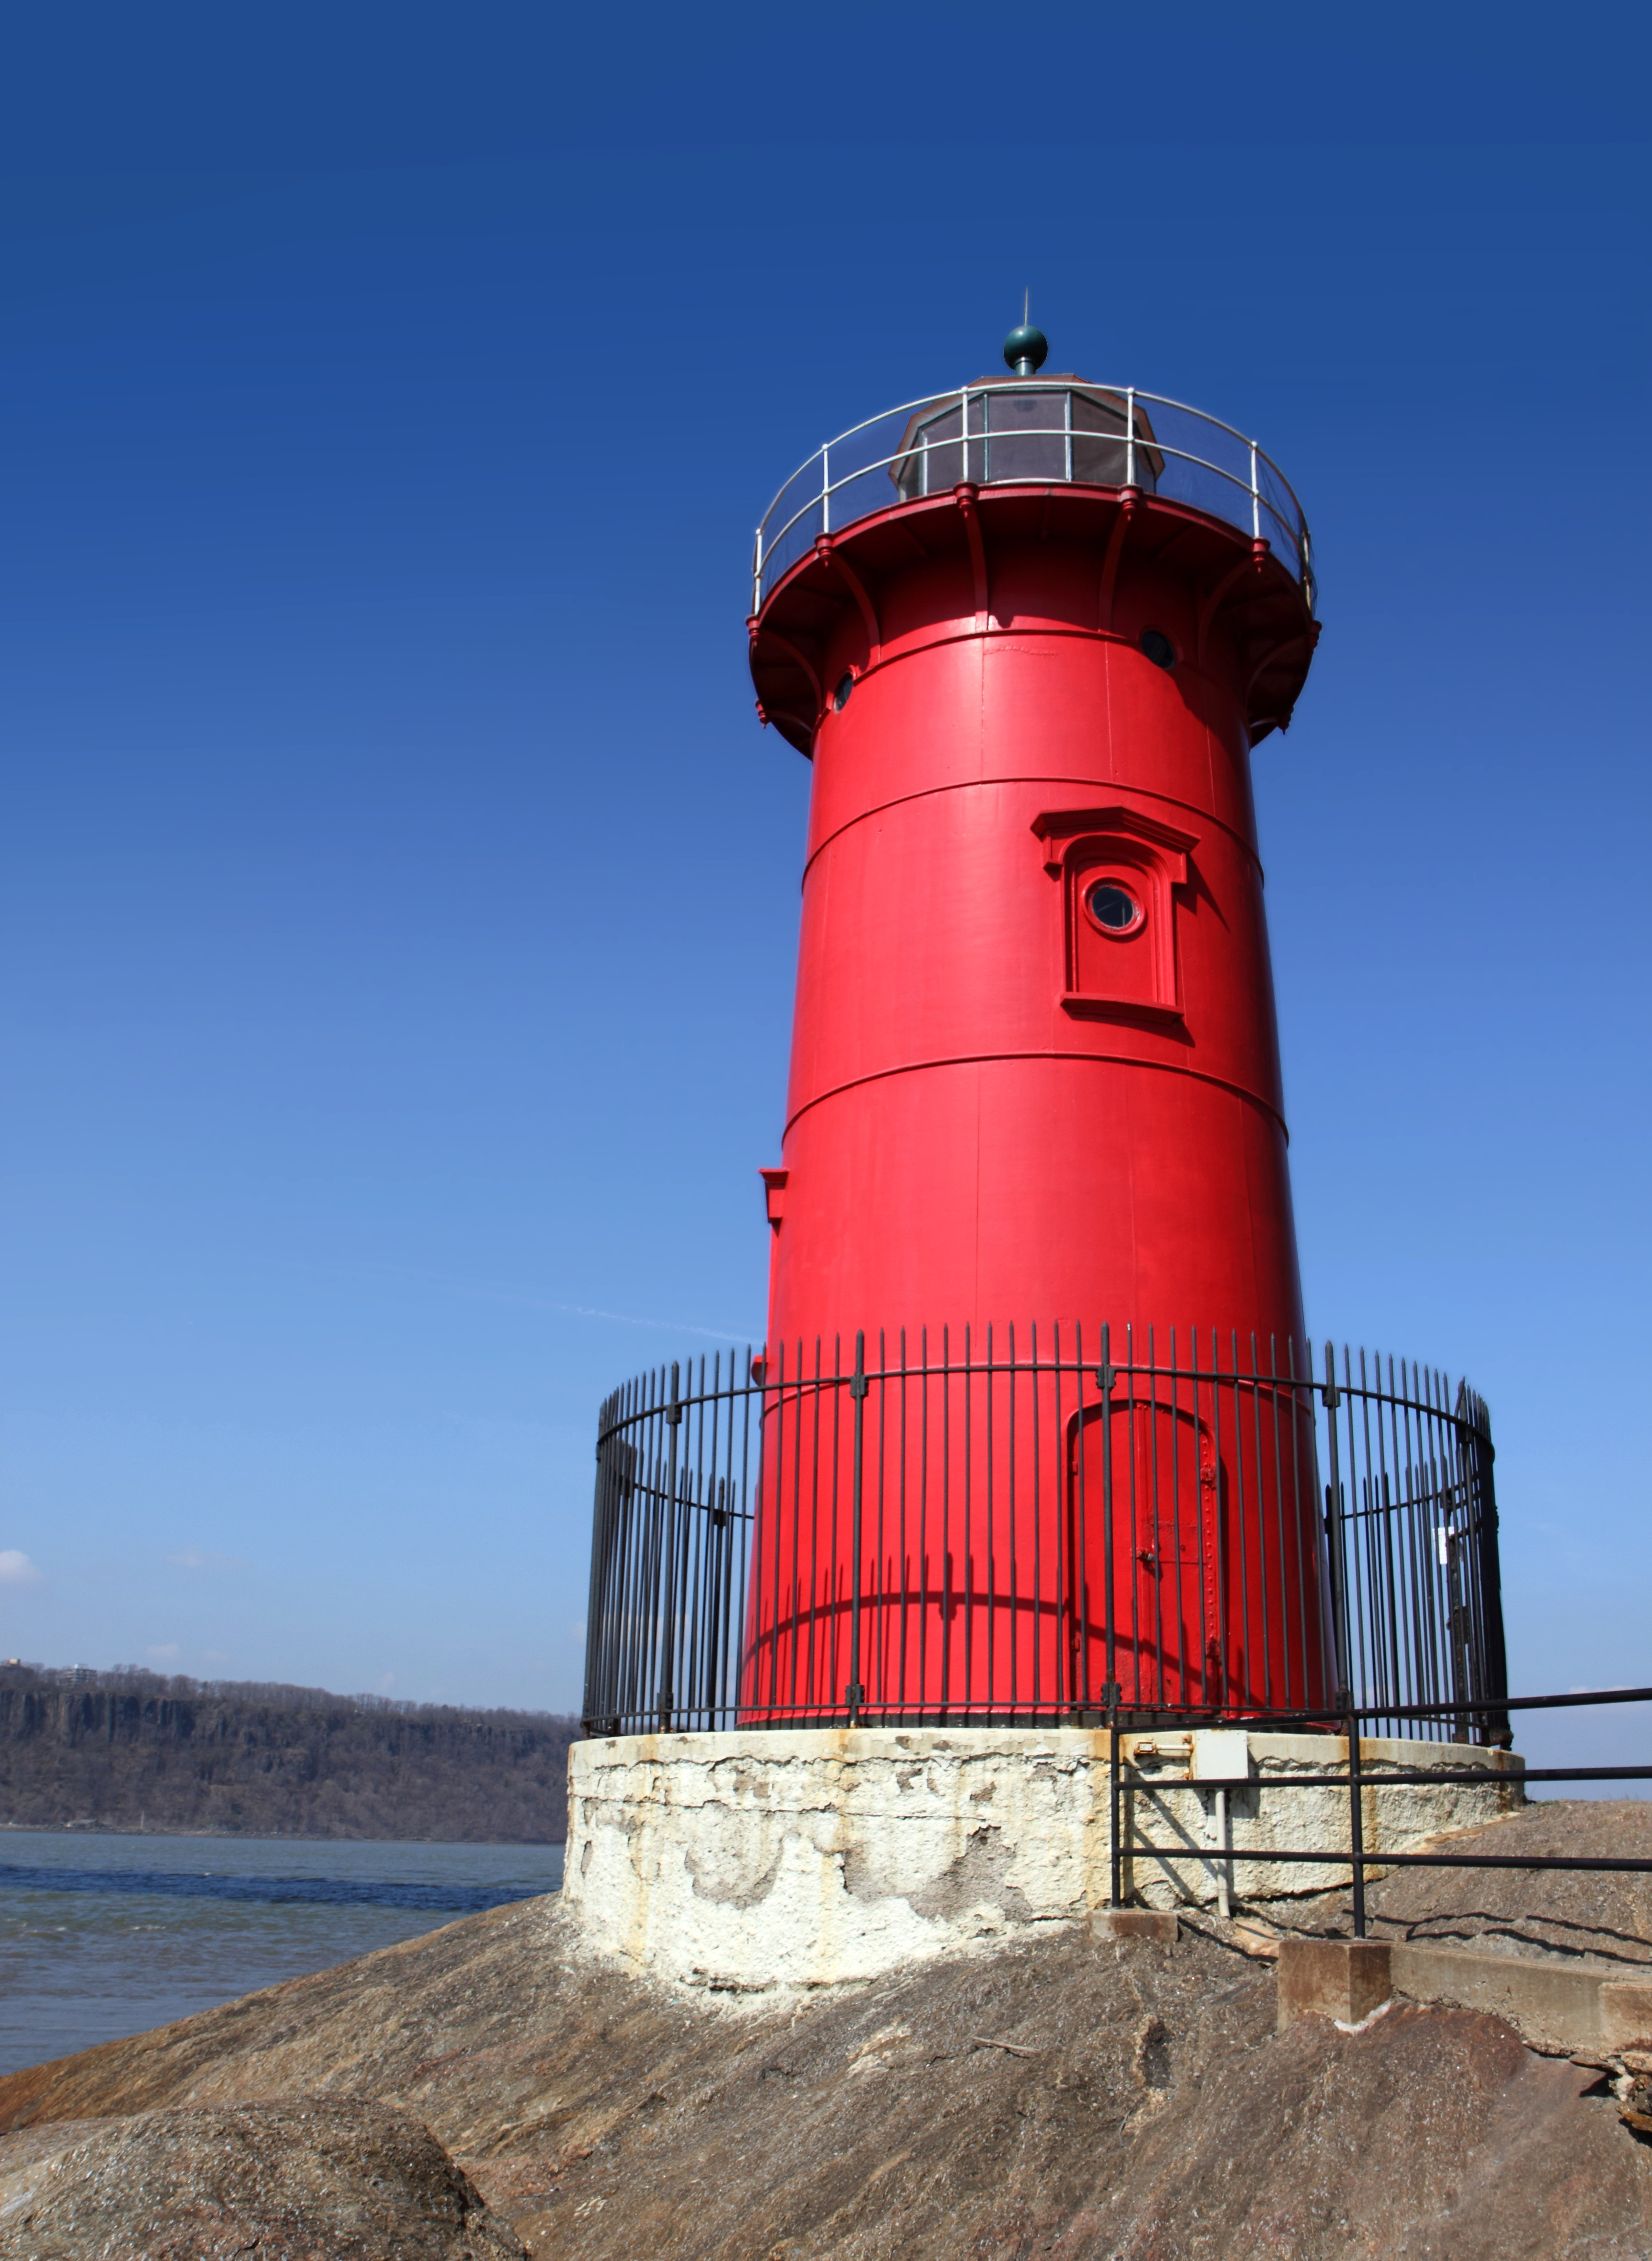 File:Little Red Lighthouse 2.jpg - Wikimedia Commons